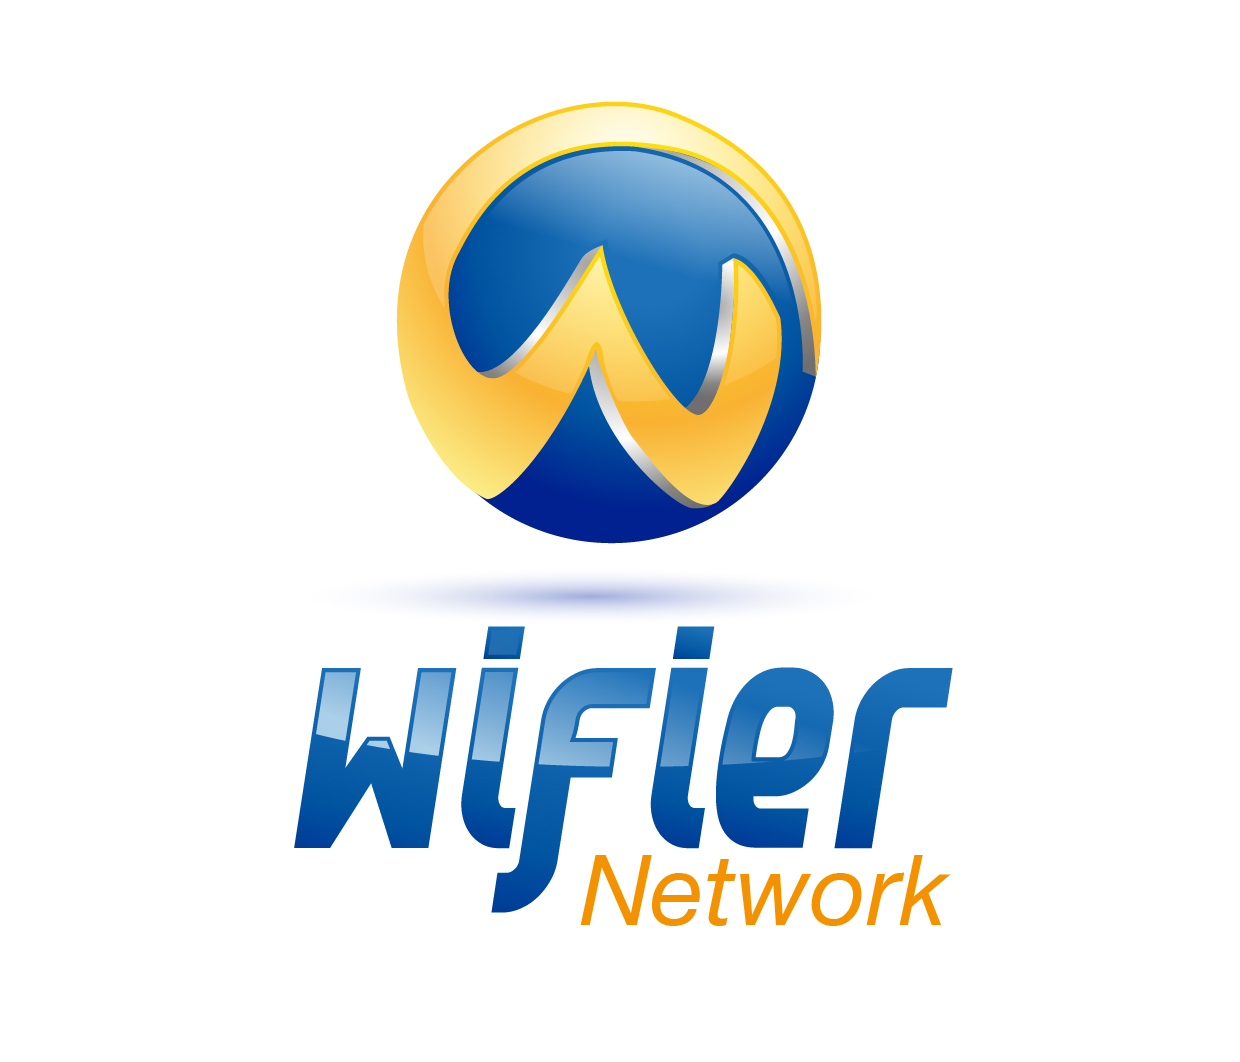 Logo Design by jeeband - Entry No. 42 in the Logo Design Contest New Logo Design for Wifier Network.